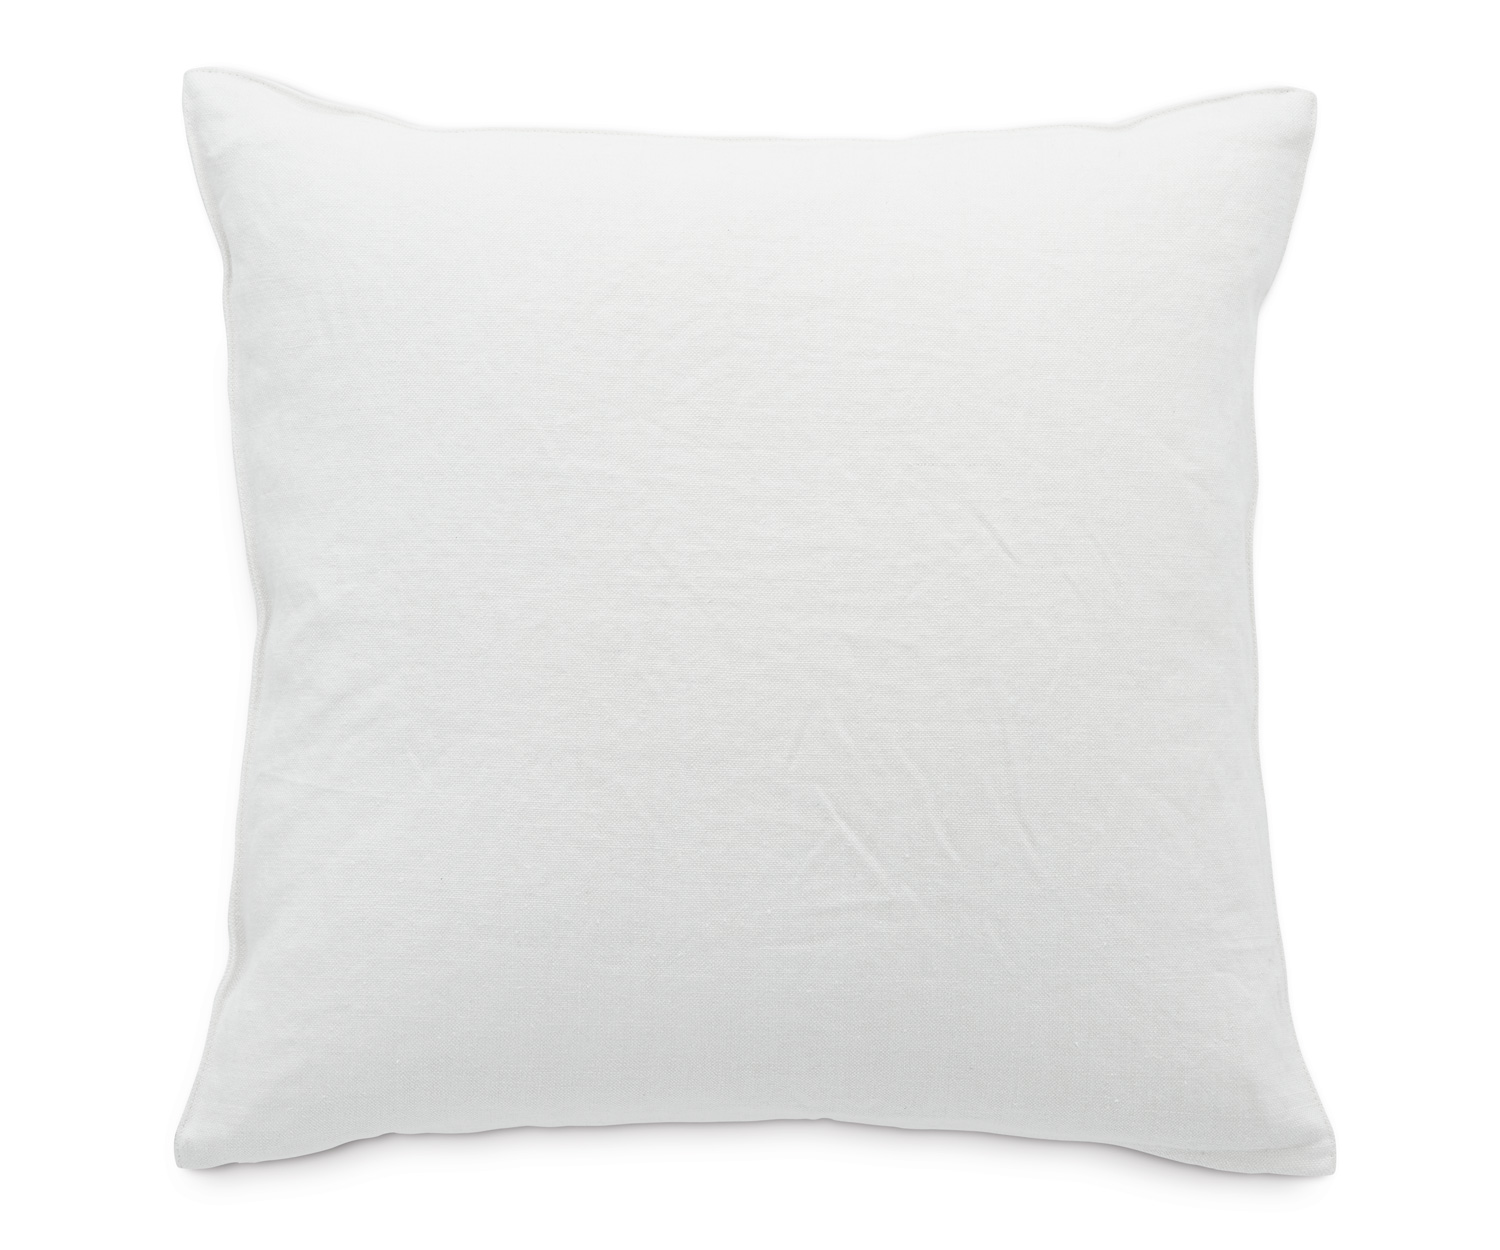 Luiz Pale Cushion Cover In 5 Colours Now Online Available Marc Leopold